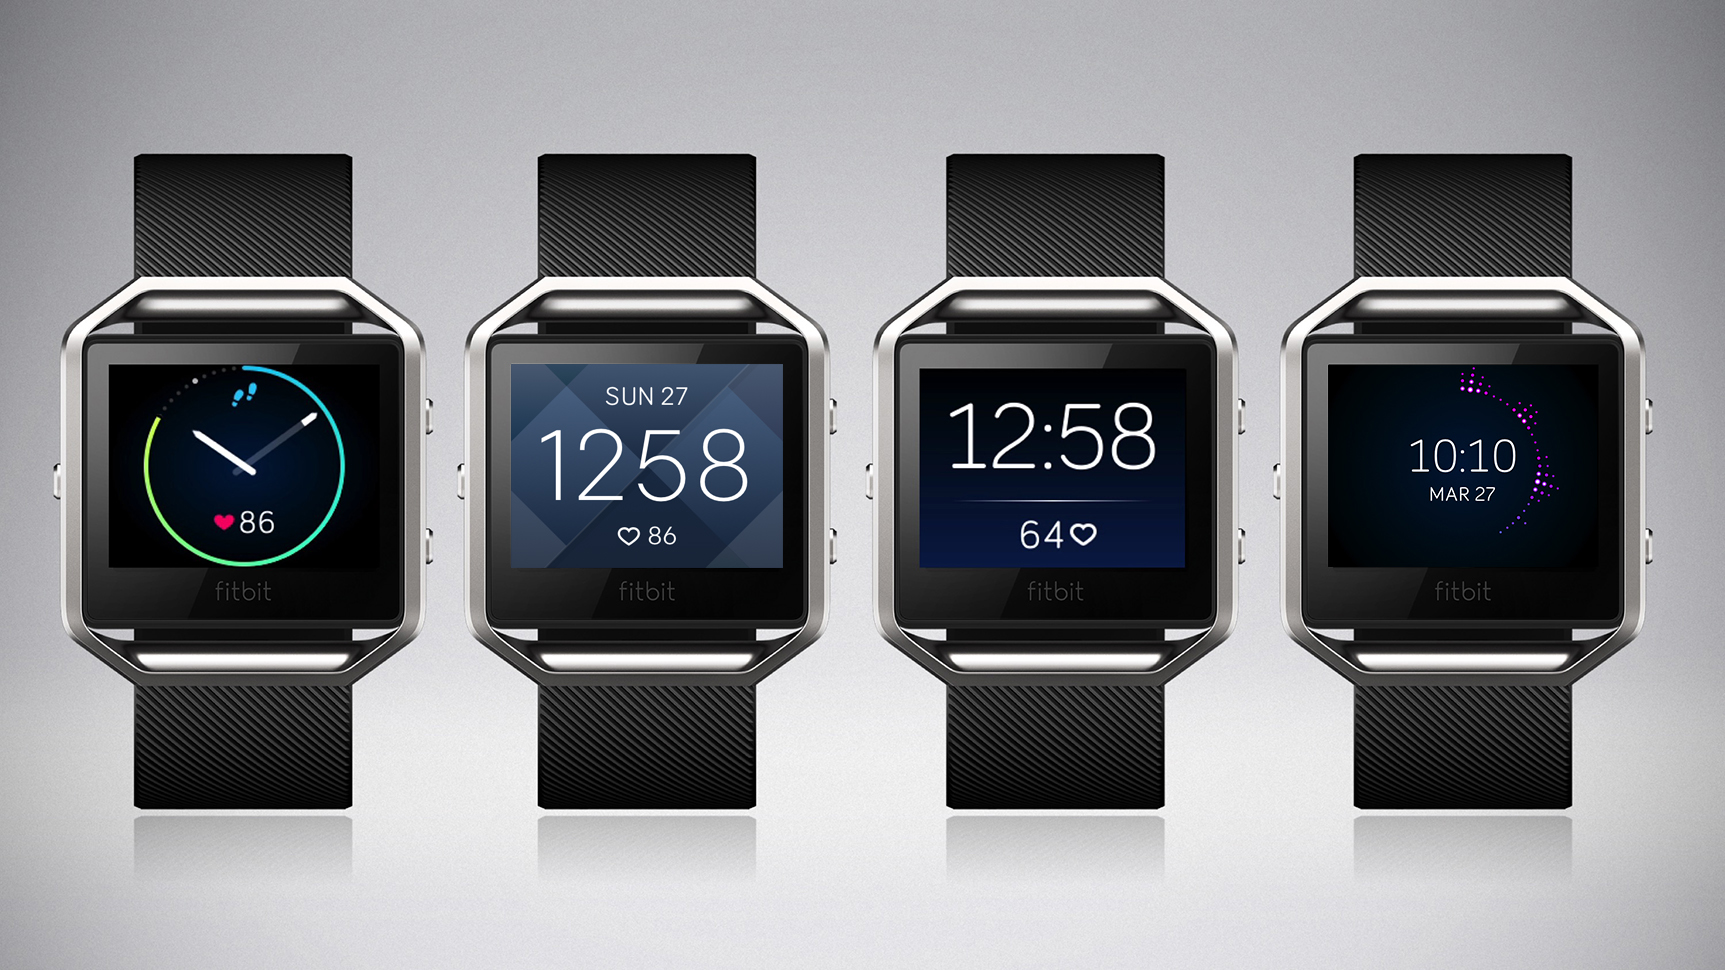 Fitbit's latest product, the Fitbit Blaze smartwatch